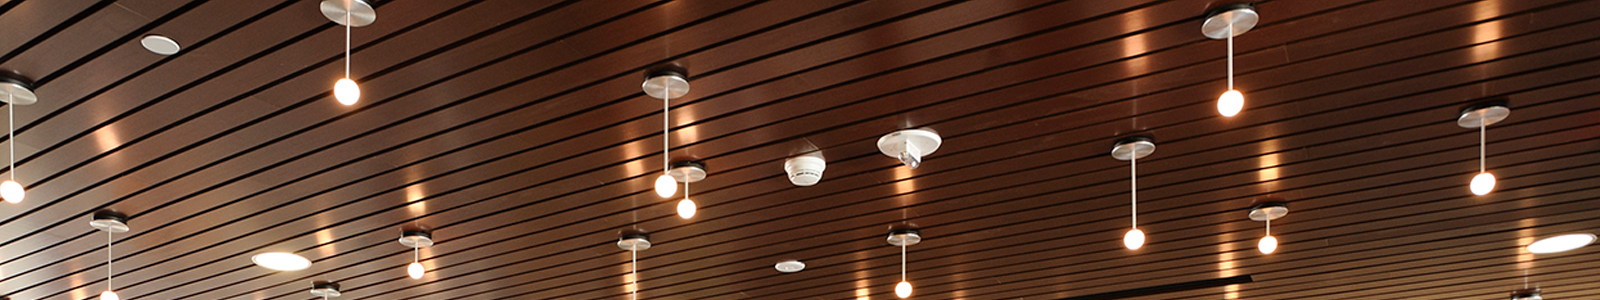 Circular lights hanging down from a wood slated ceiling in the Robin's Nest Café.